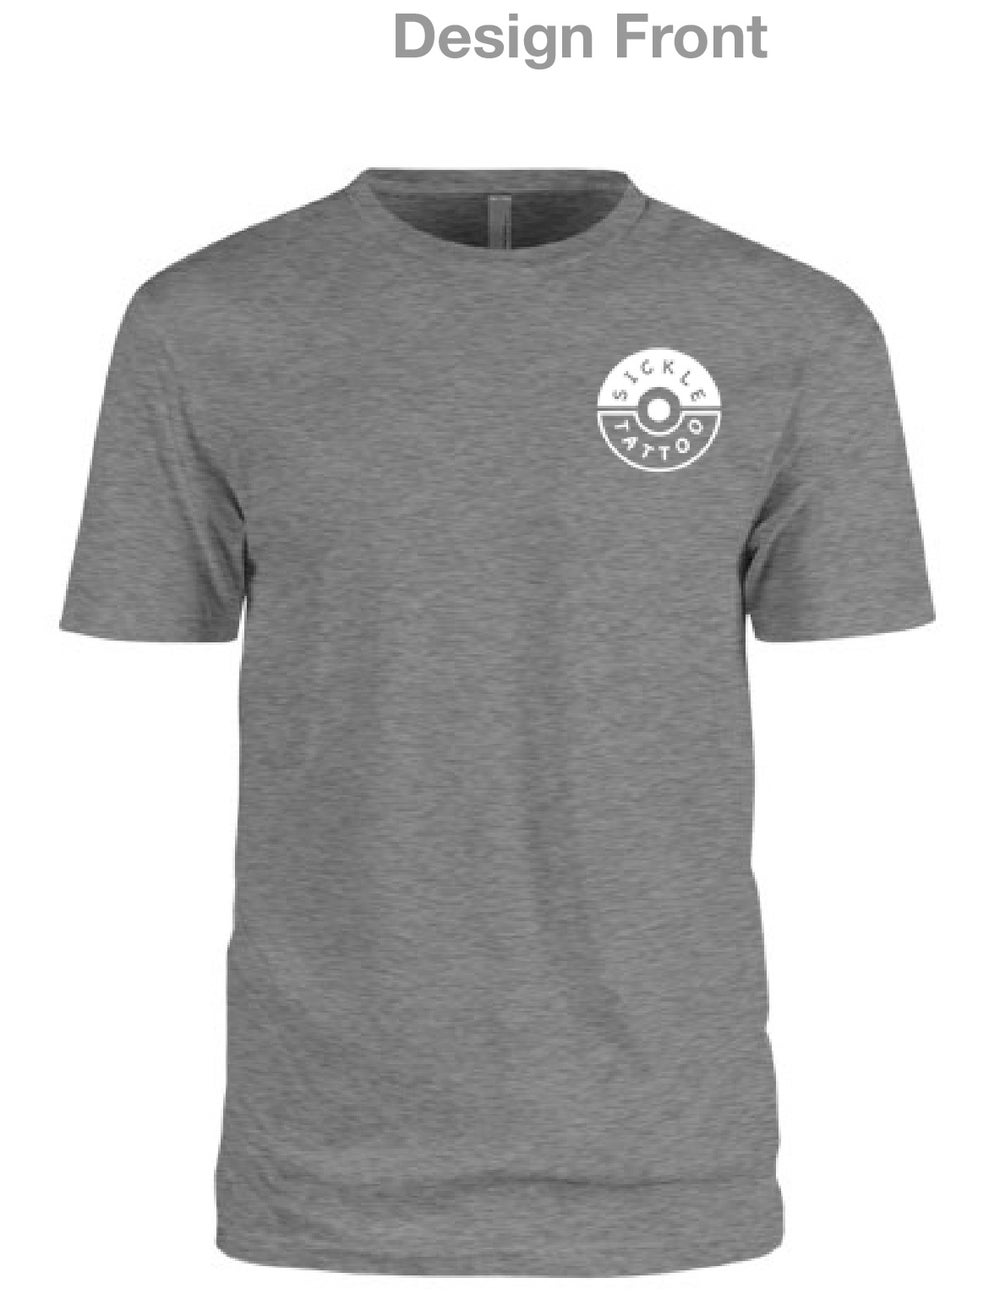 Image of Flower Sickle T-shirt